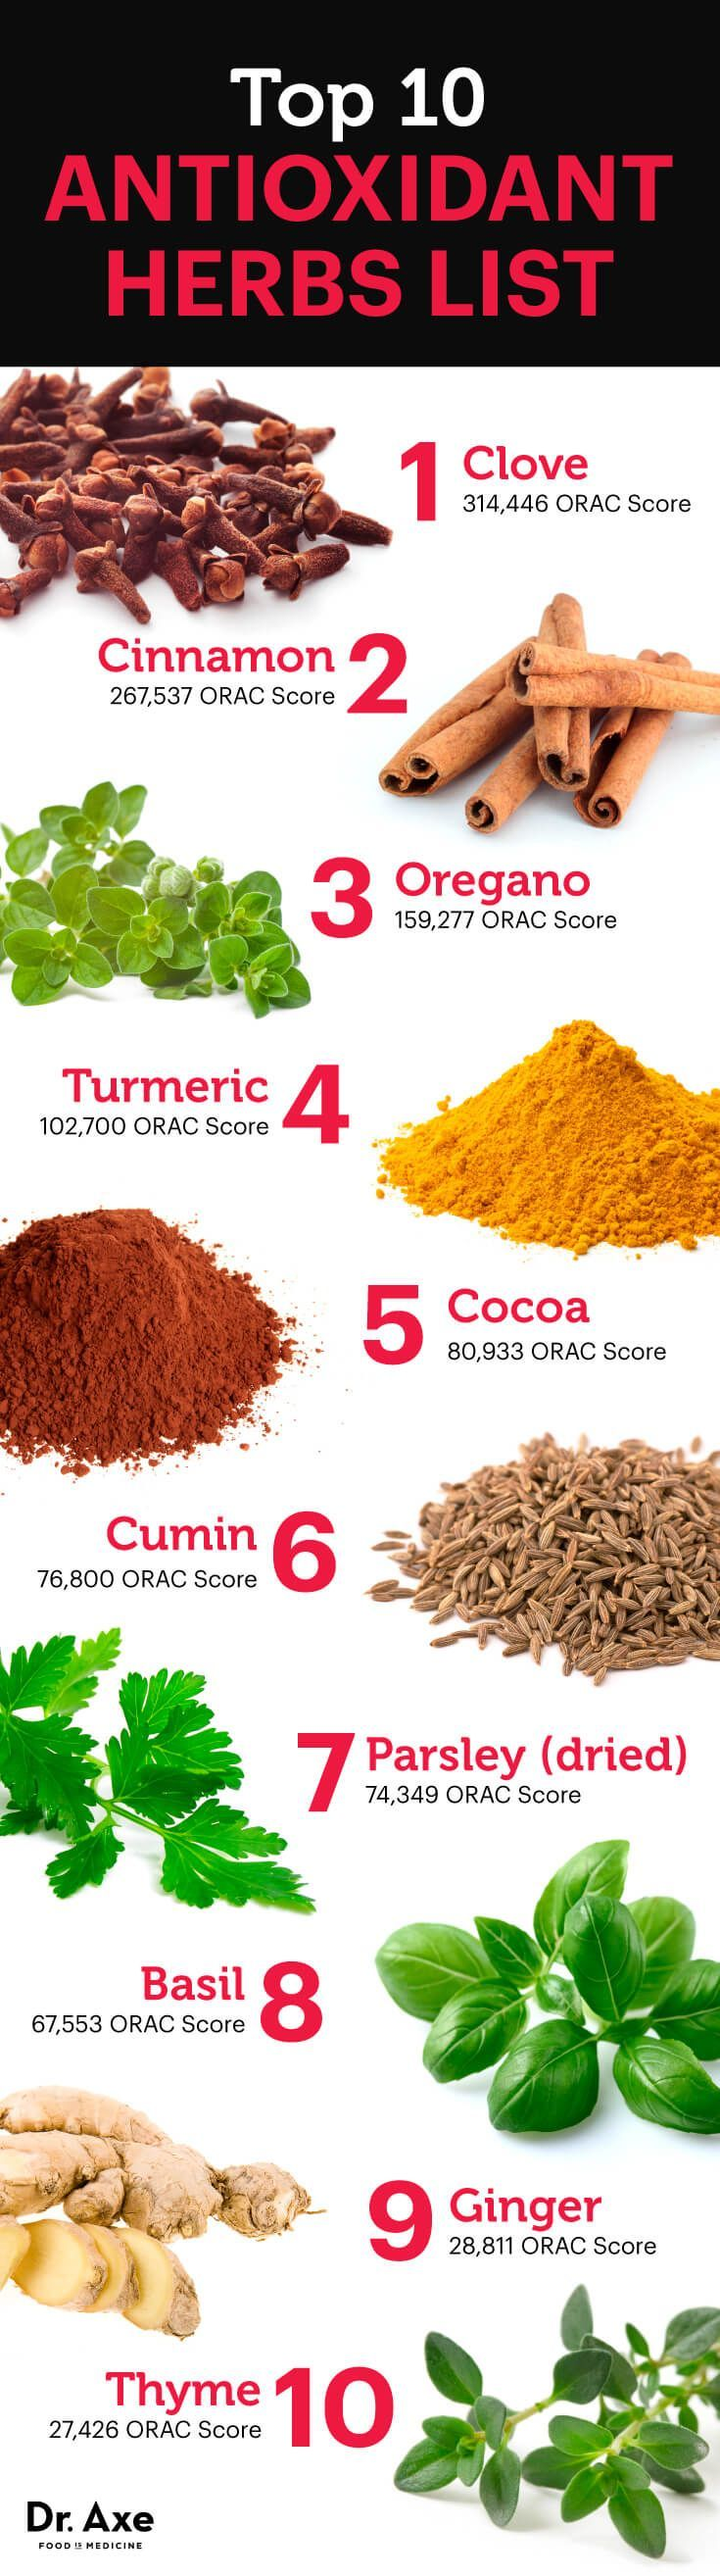 Antioxidant benefits include healthy, anti aging skin, heart health, and improved eye health.Try these Top 10 High Antioxidant Foods to get health benefit.